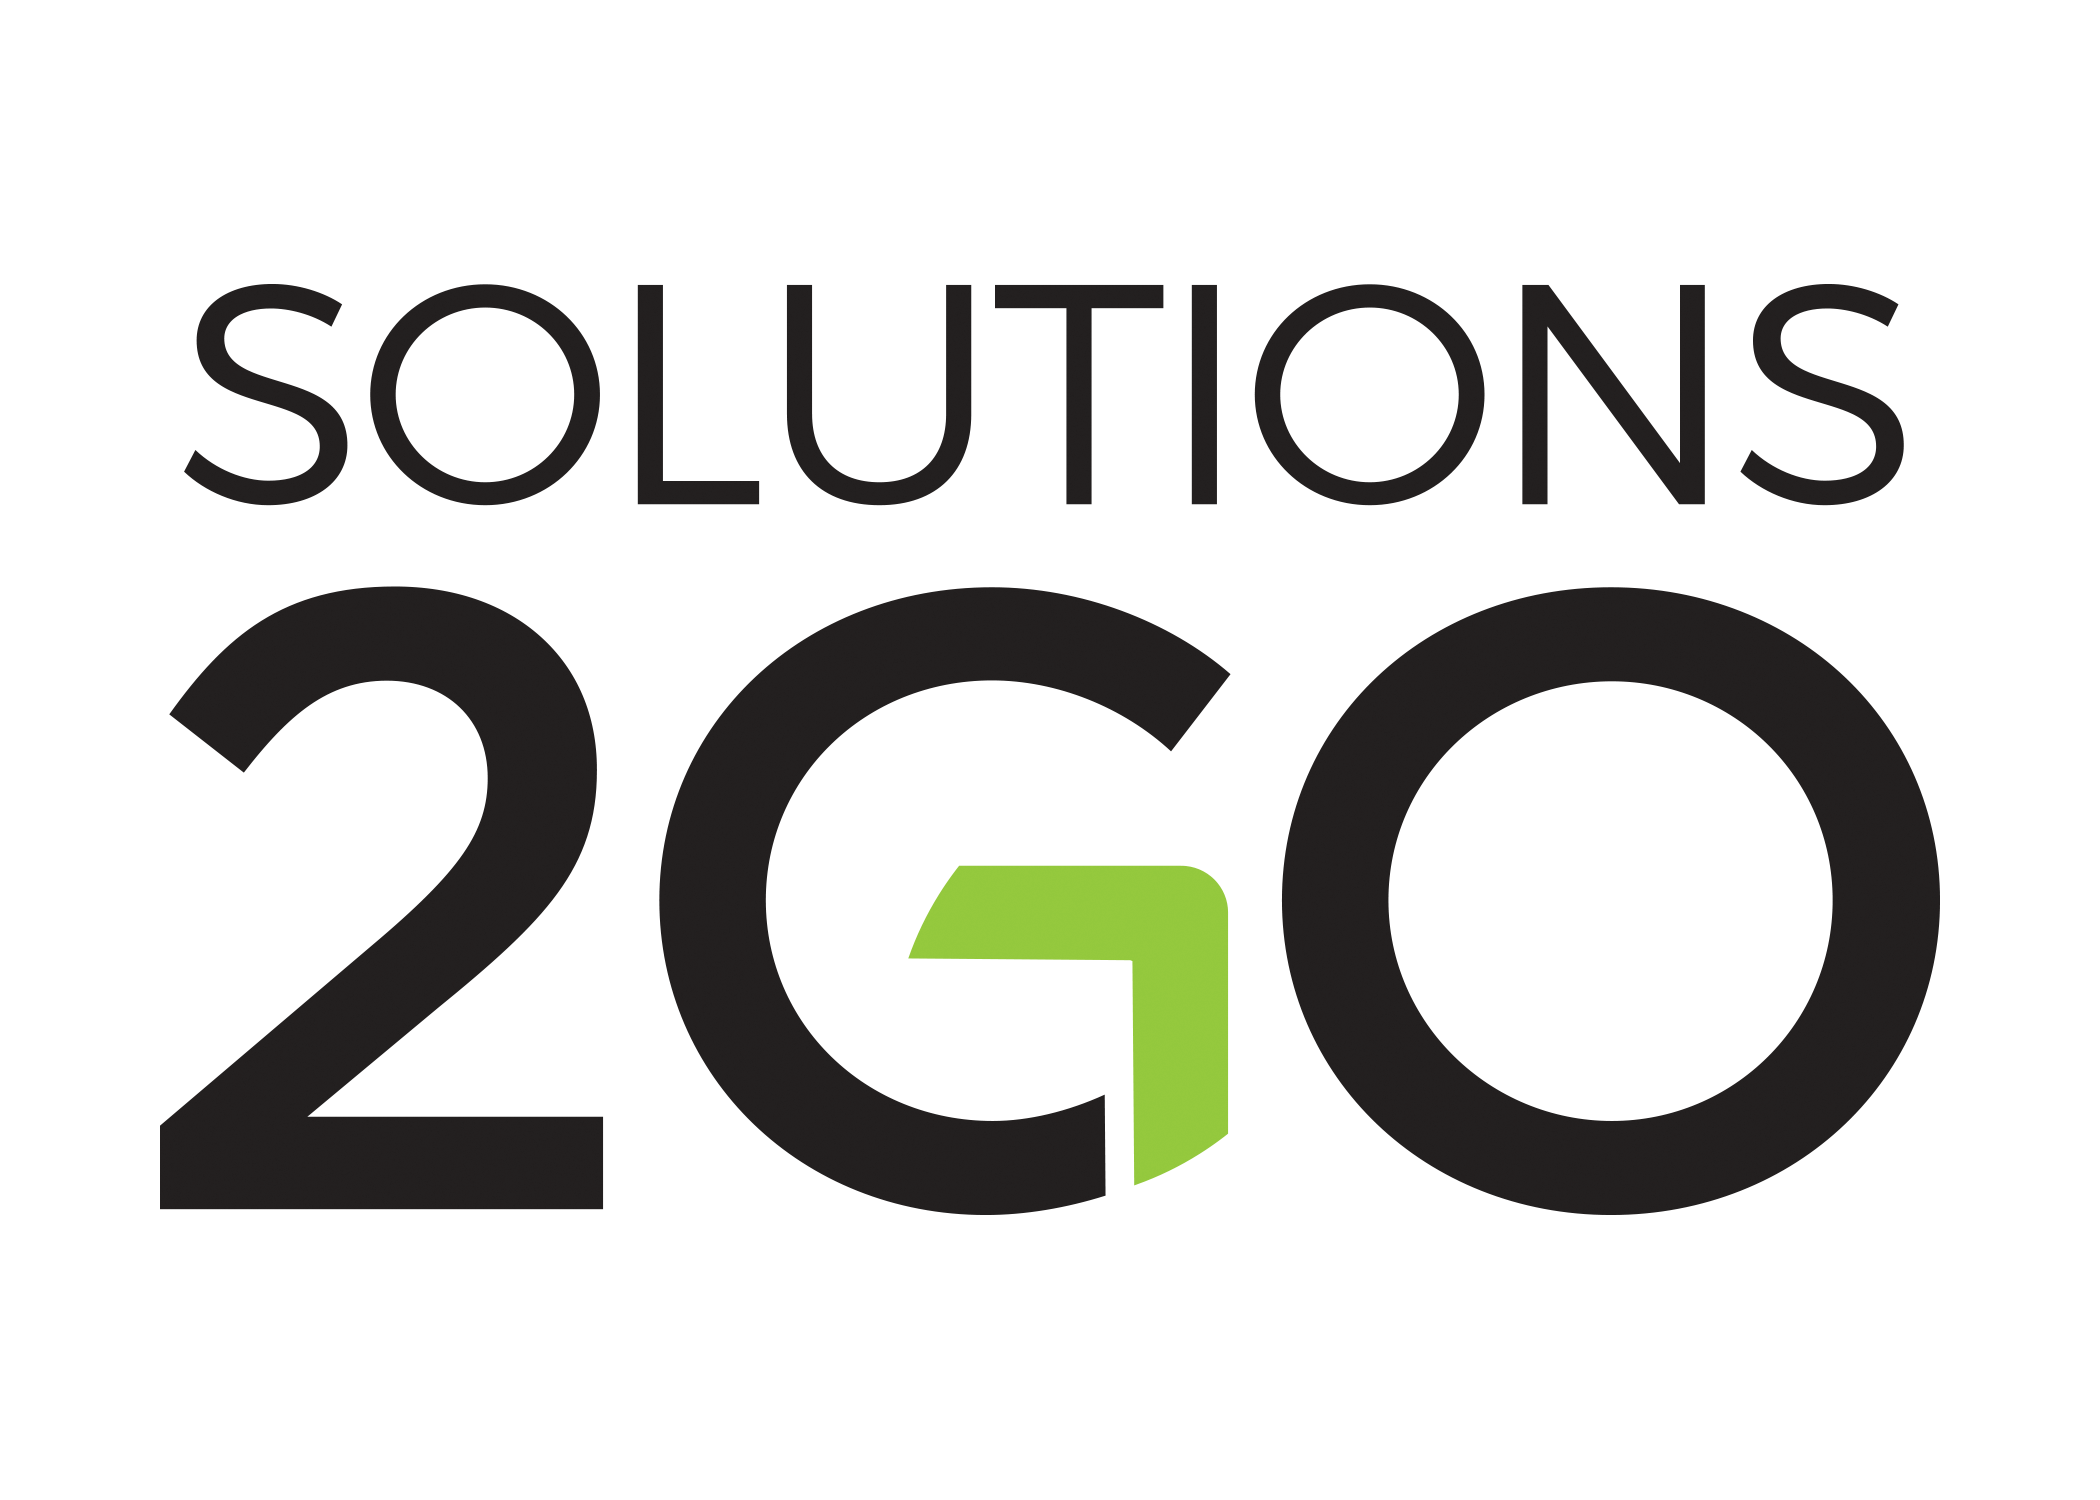 Solutions 2 GO